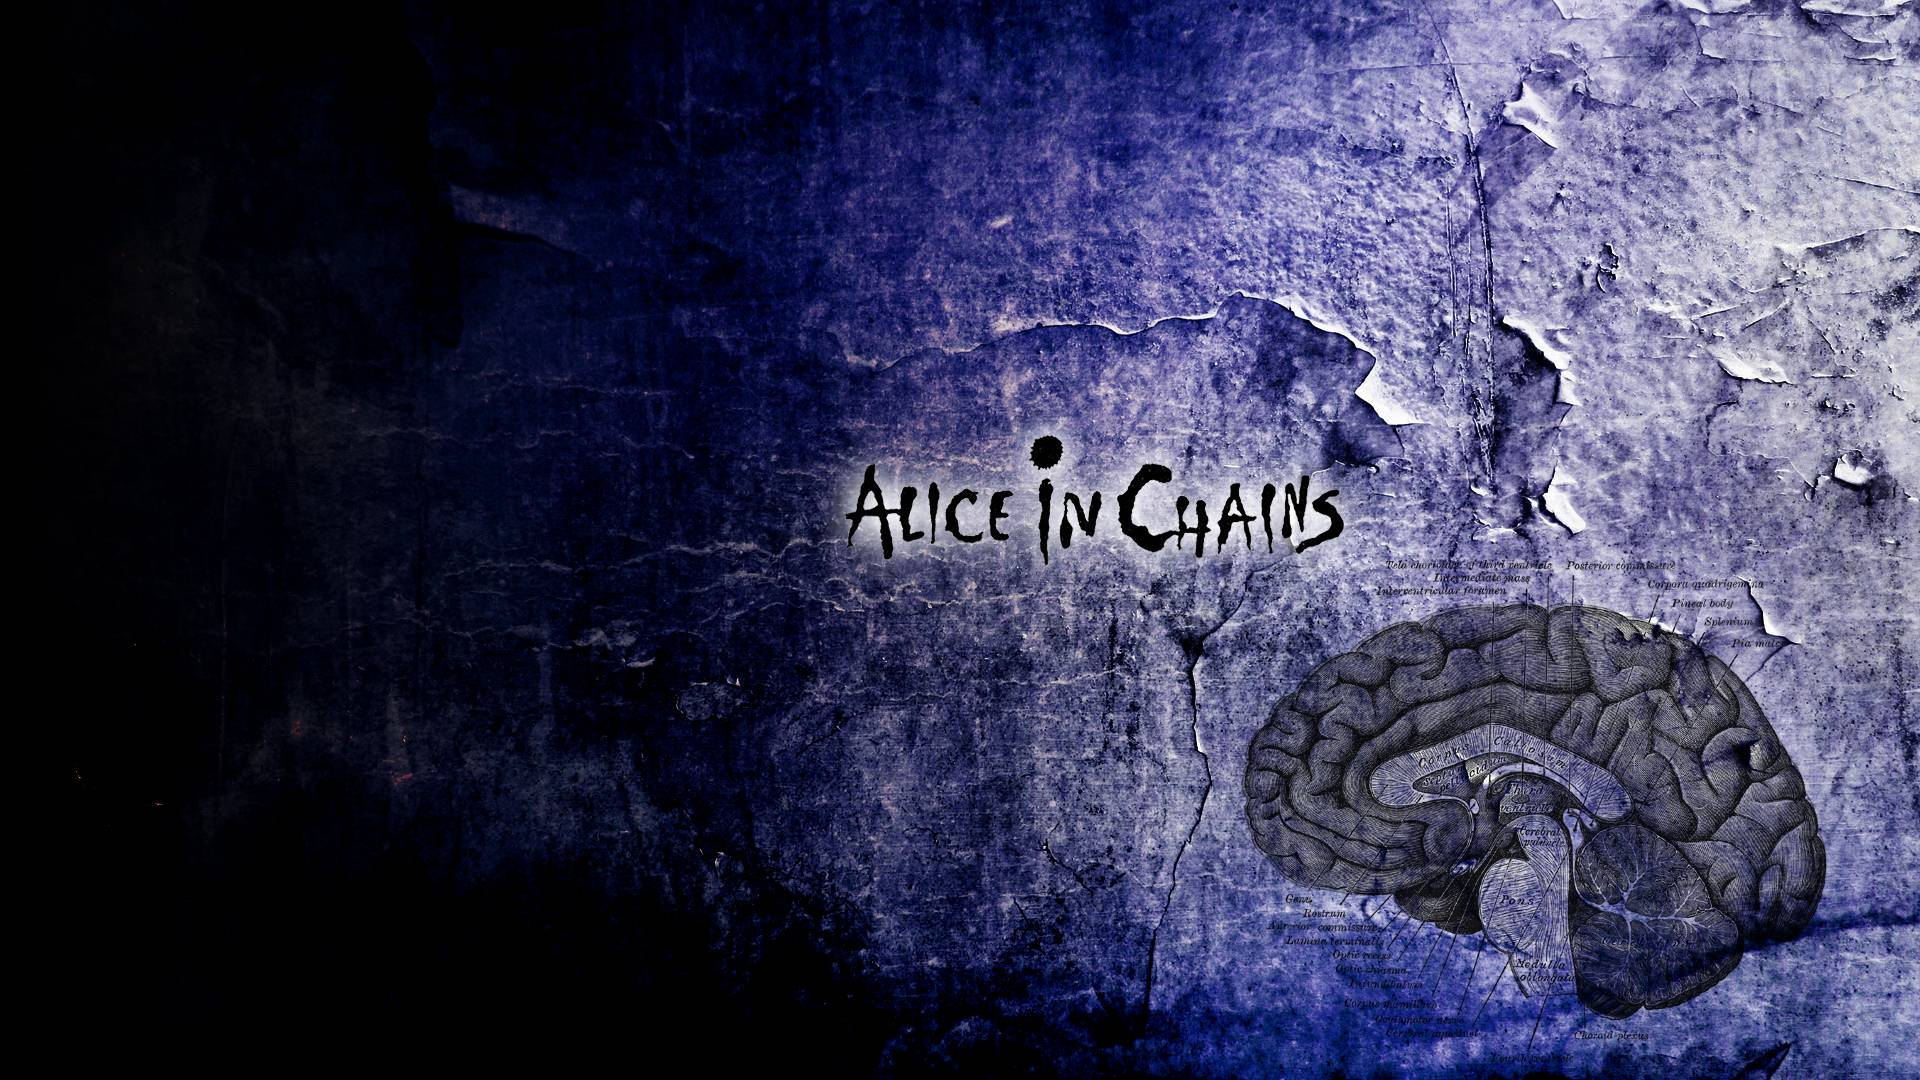 Related Pictures Alice In Chains Wallpaper Car